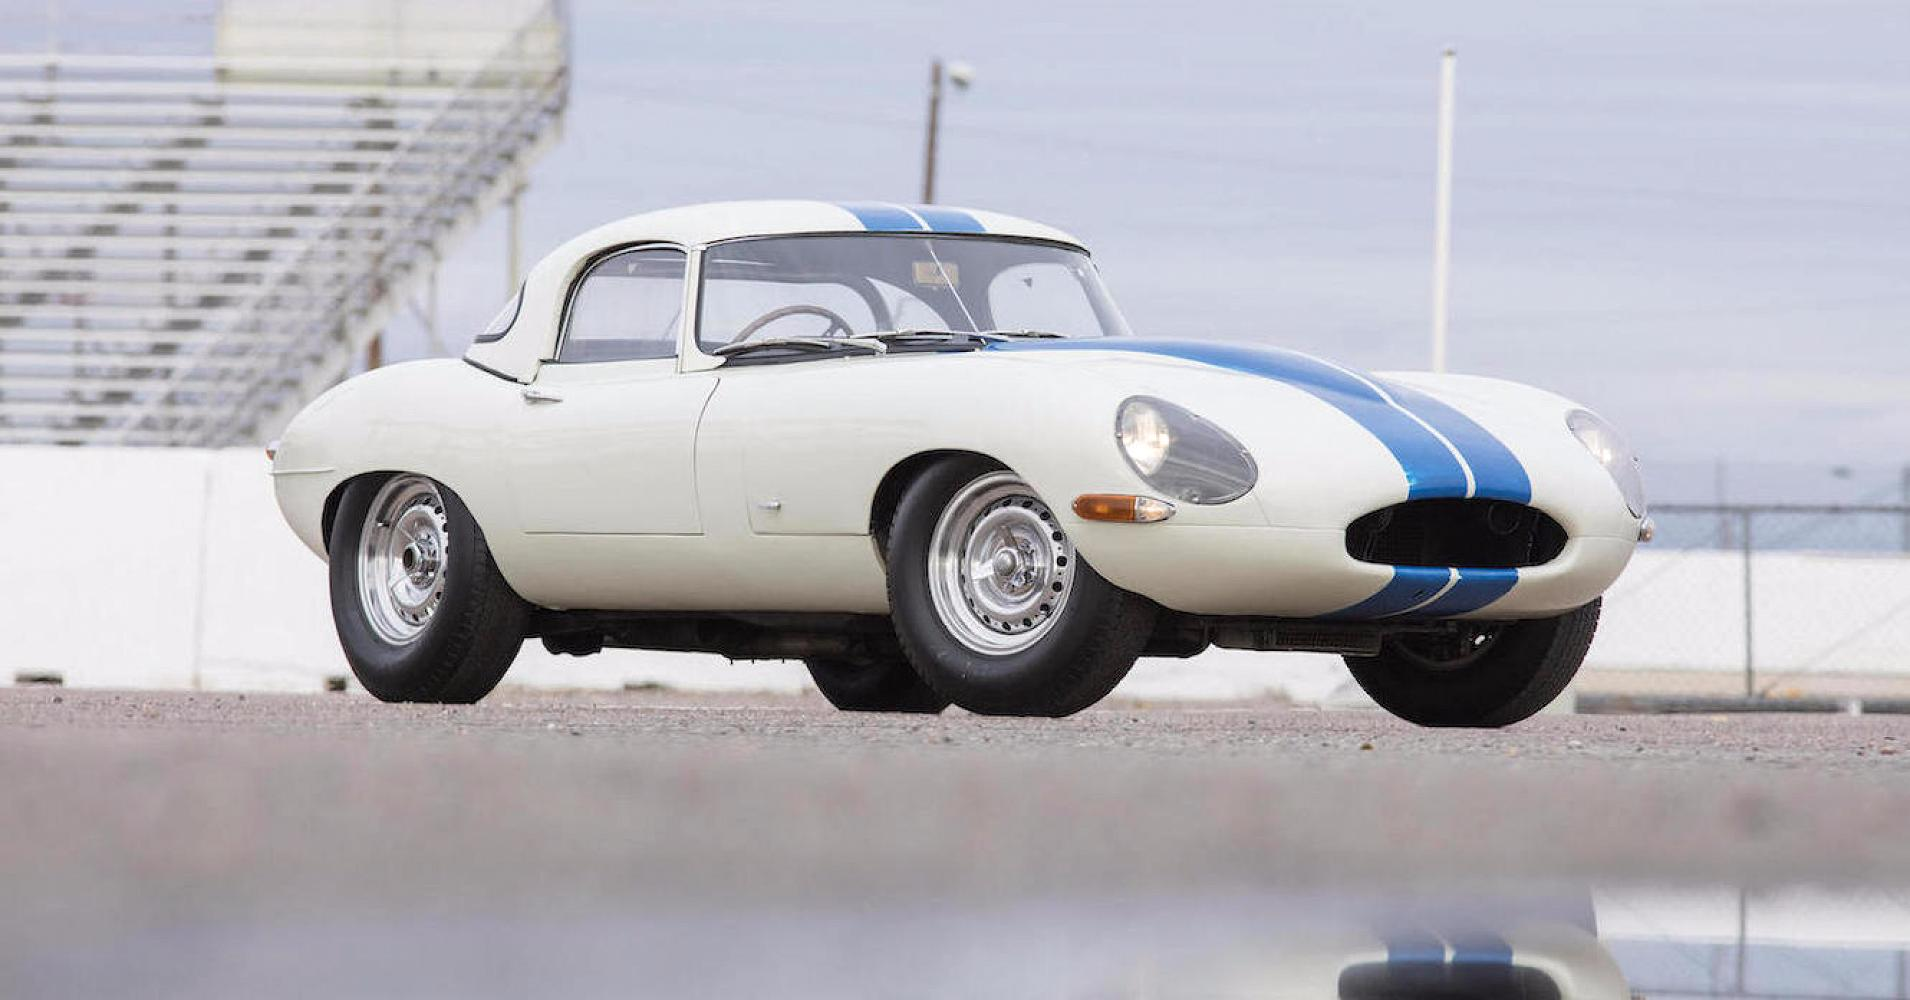 Wealthy car collectors are feeling more confident, as Scottsdale auctions rake in $260 million